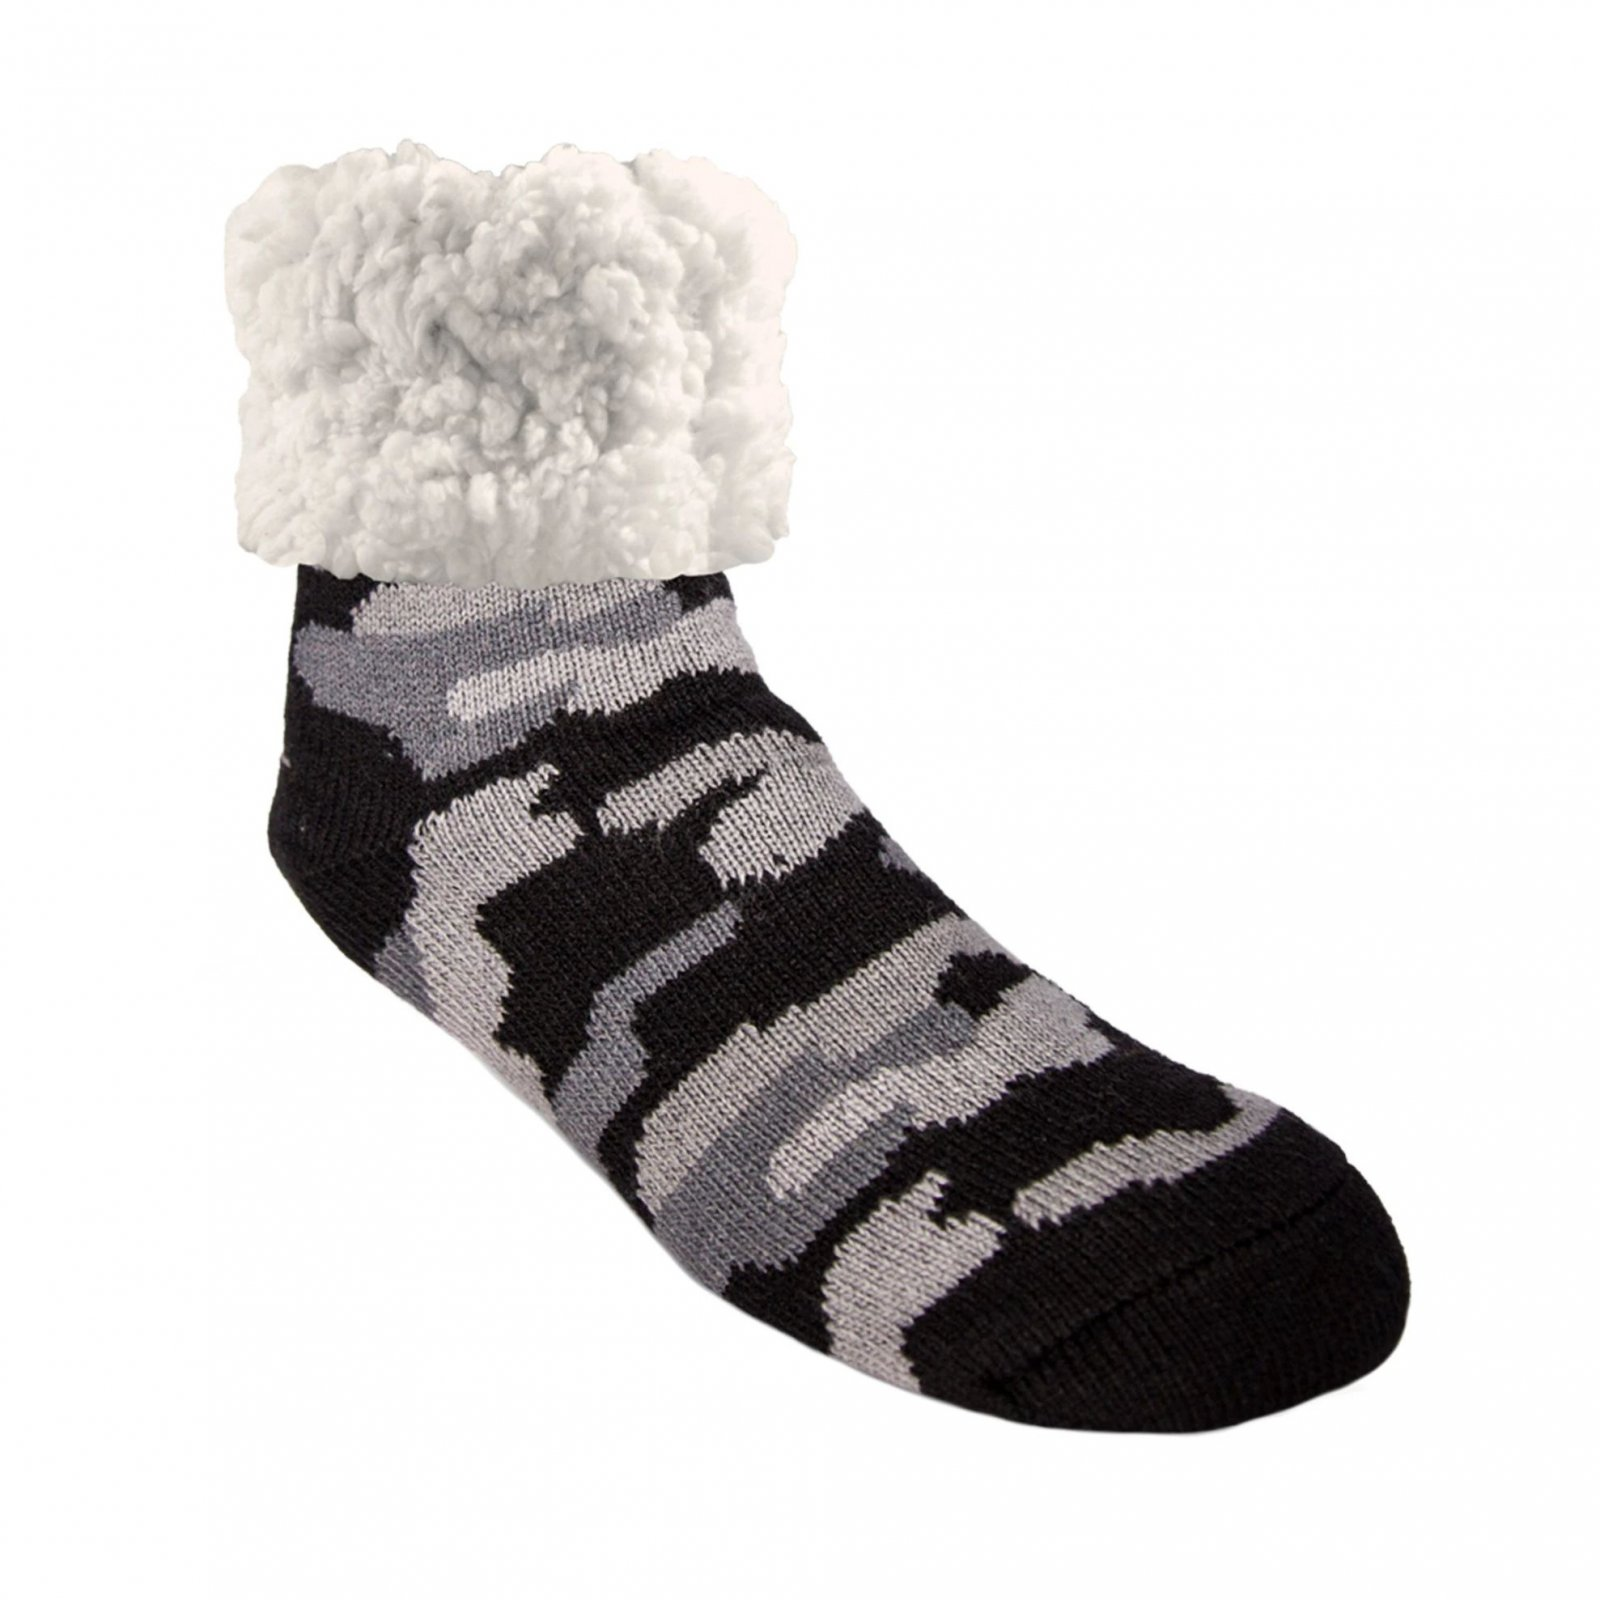 Pudus Classic Slipper Socks | Camo Grey (One Size)